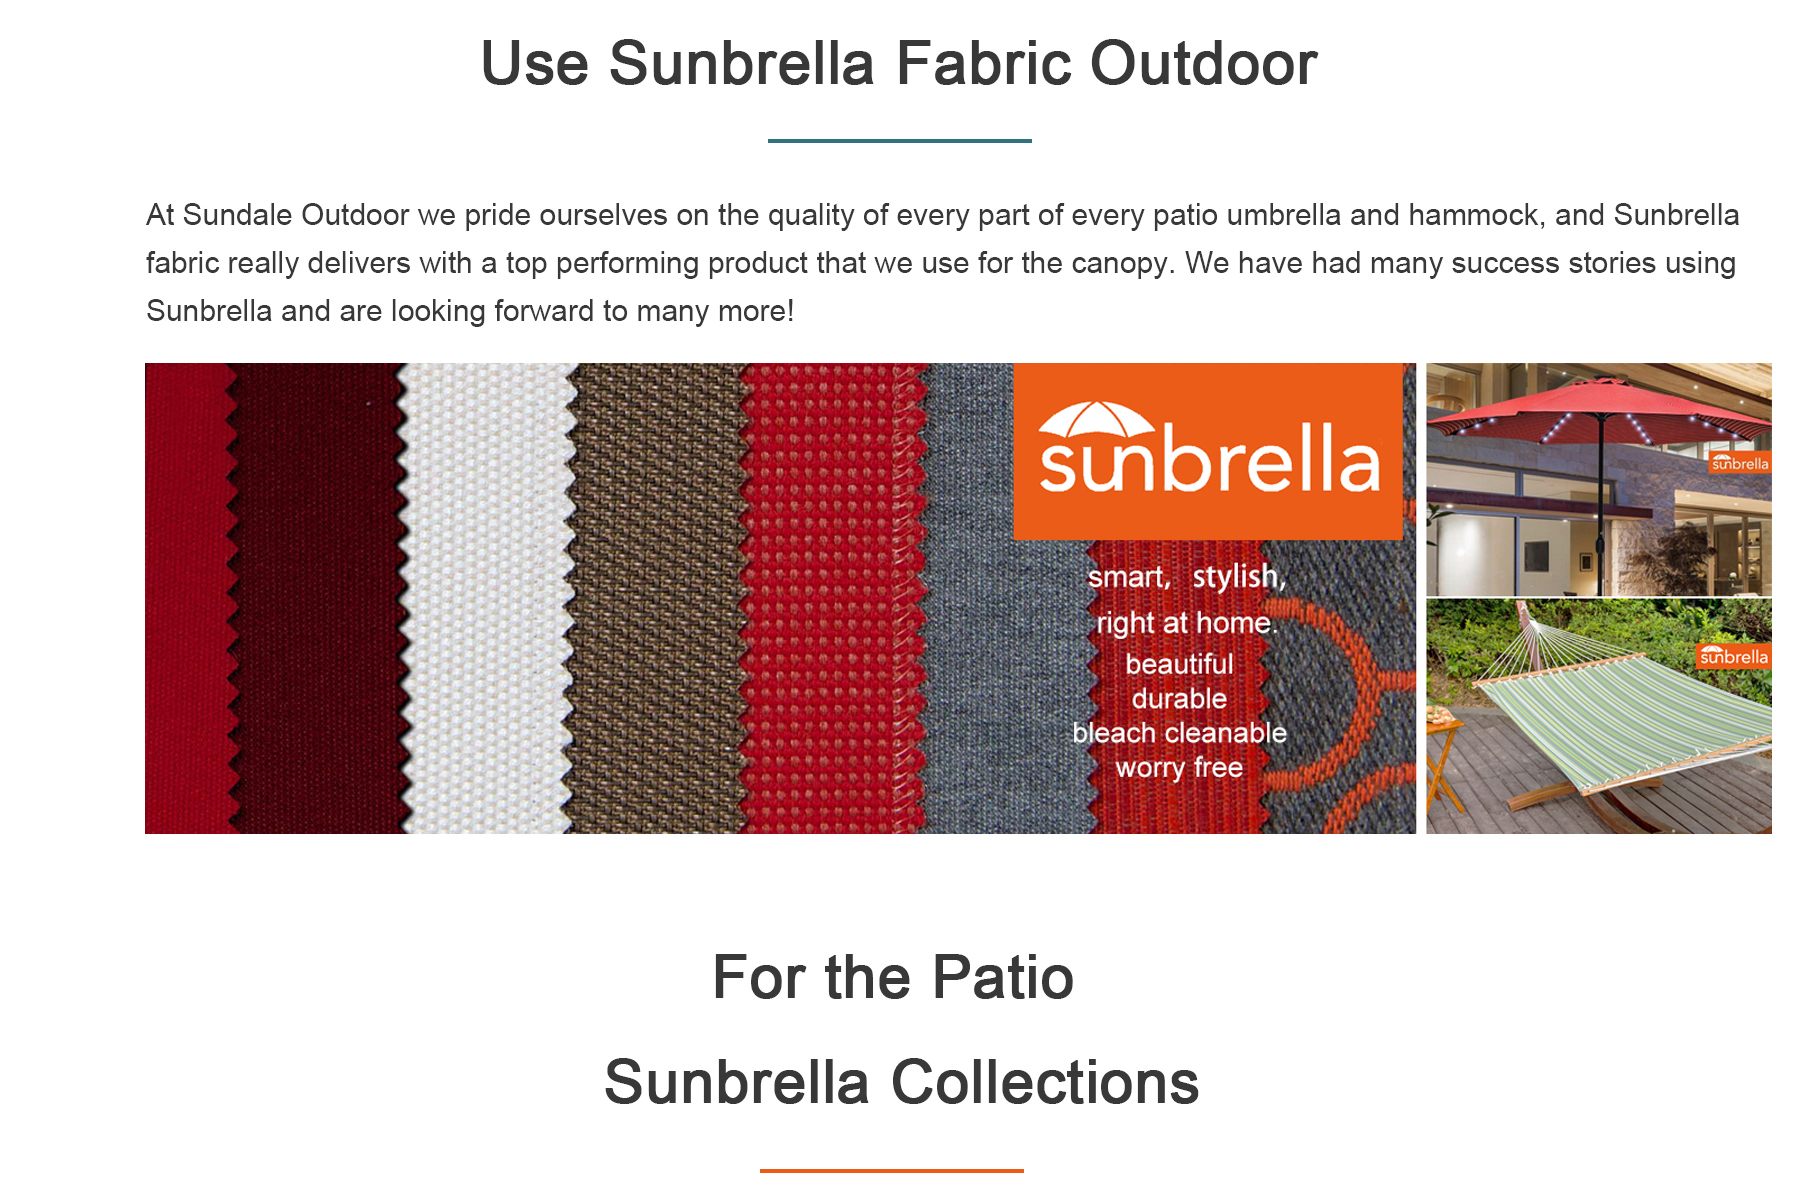 Sundale Sunbrella Fabric Products Hammock And Patio Umbrella